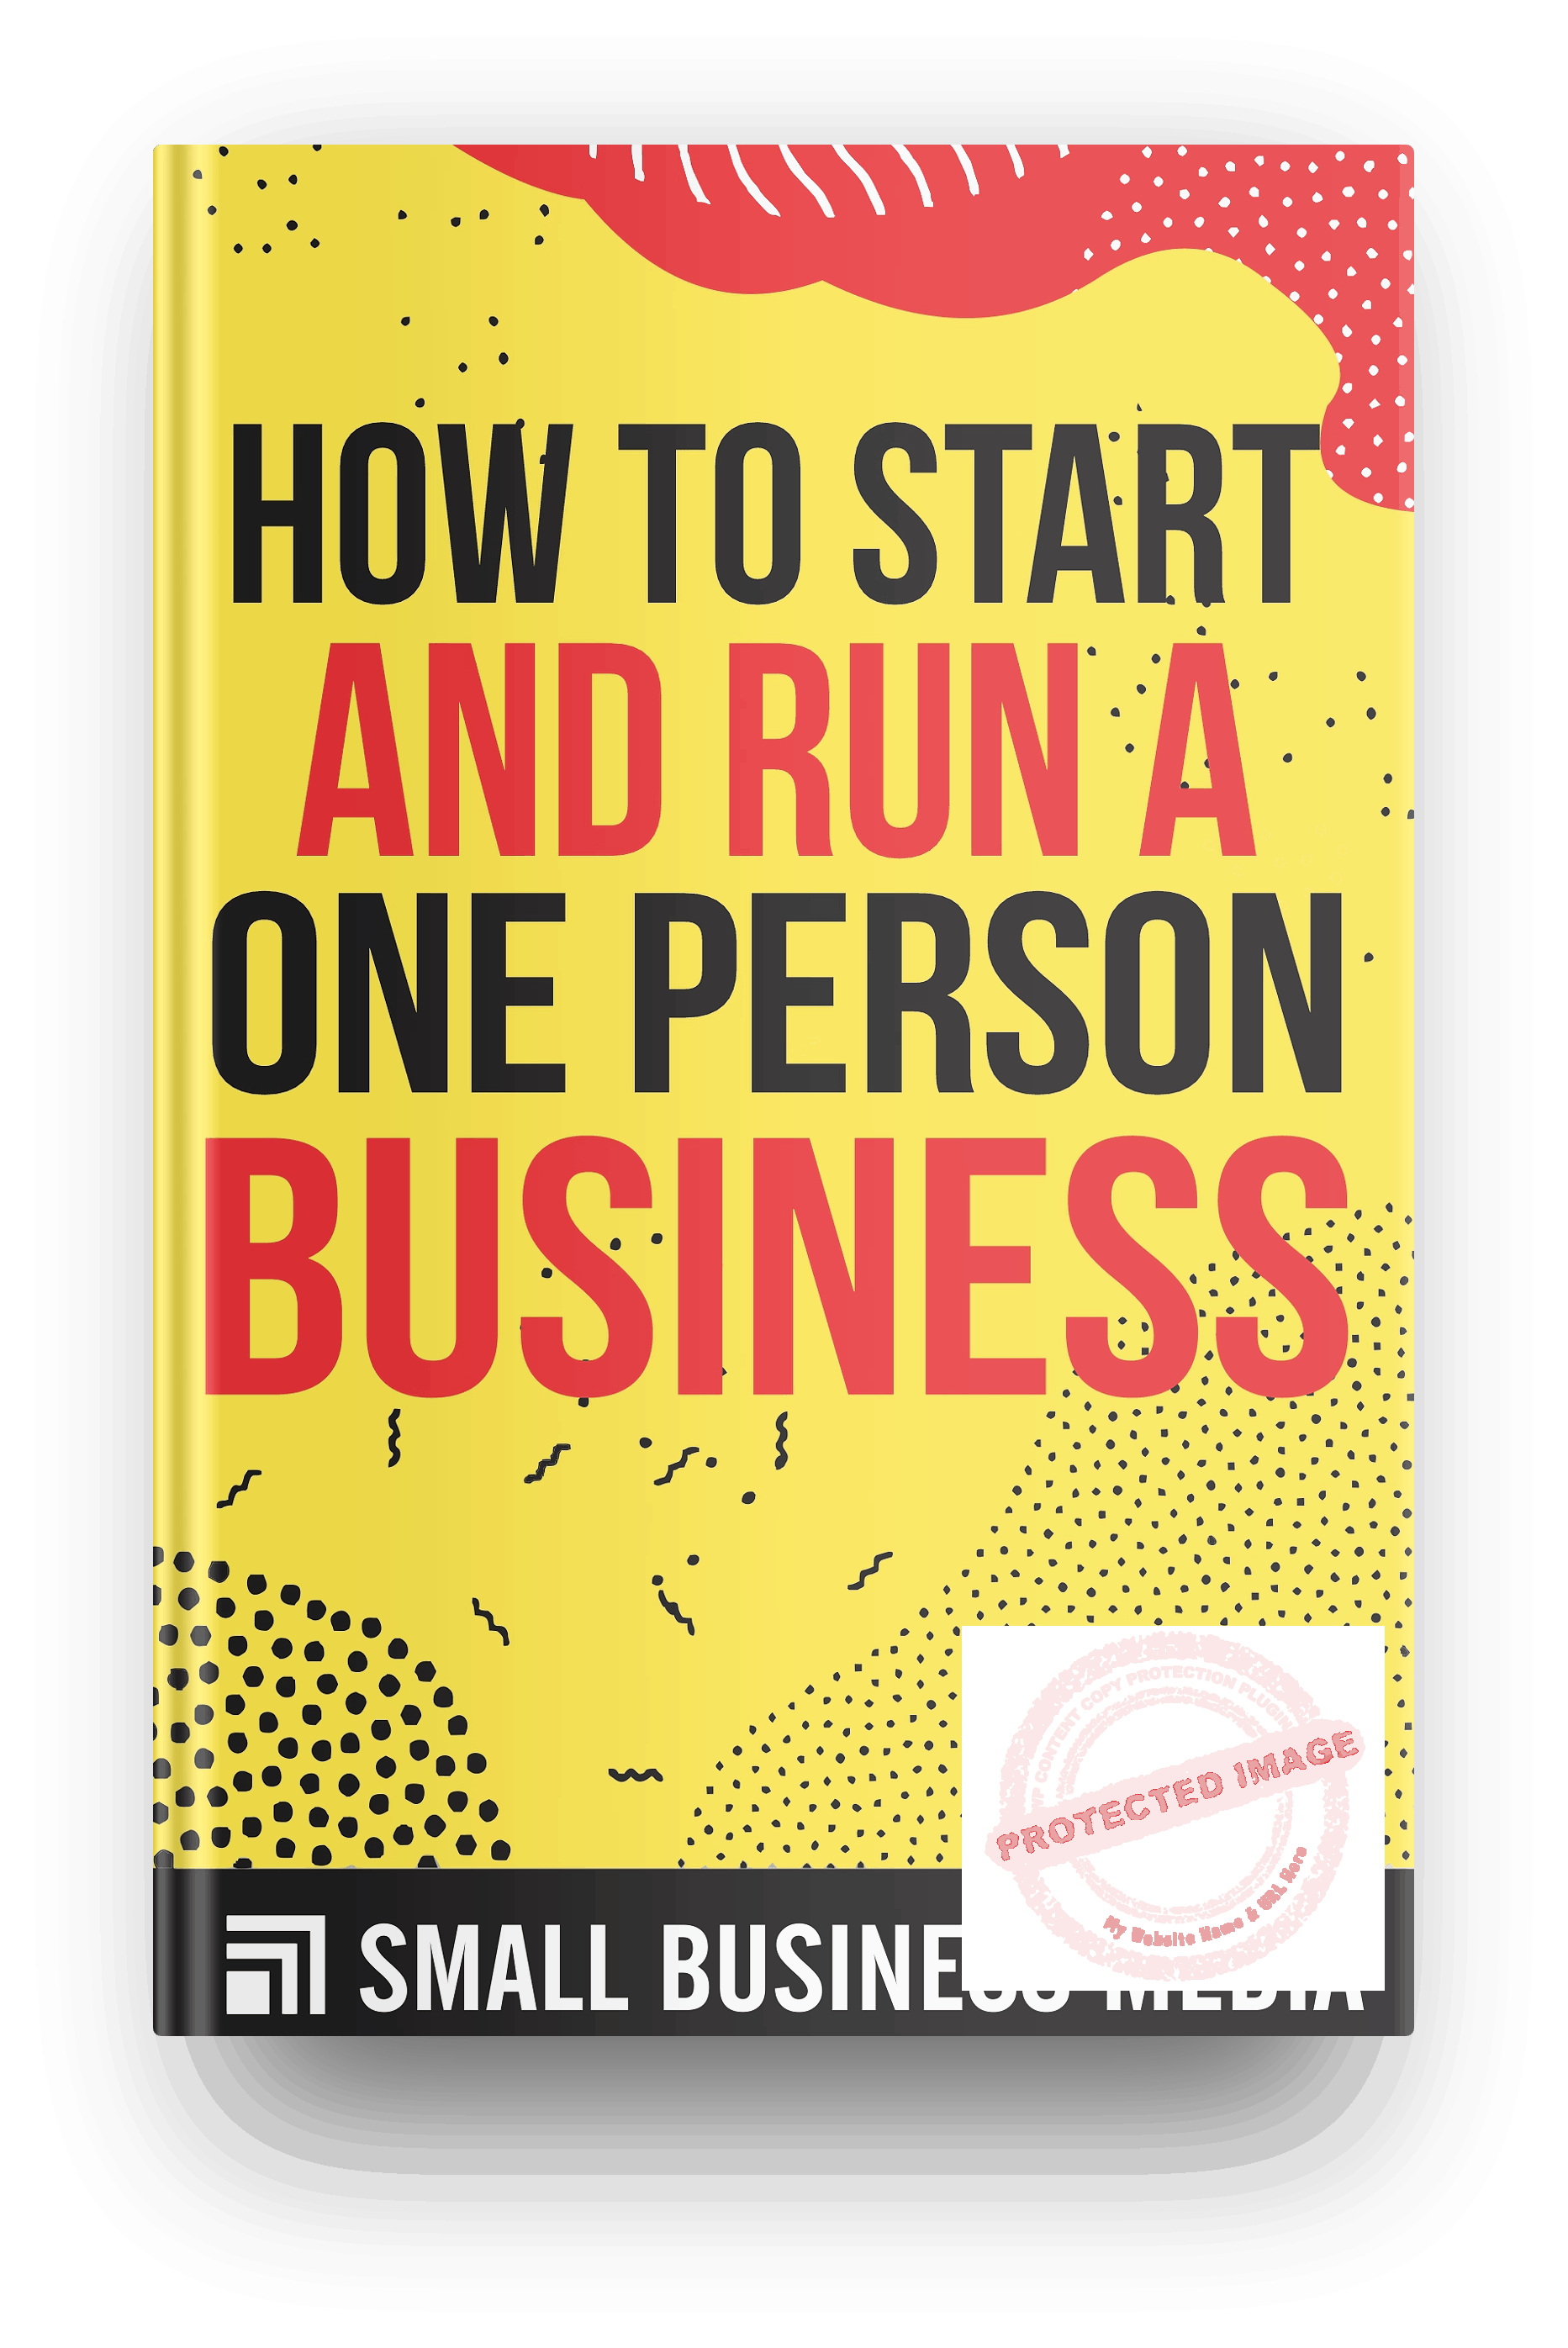 How To Start And Run A One Person Business